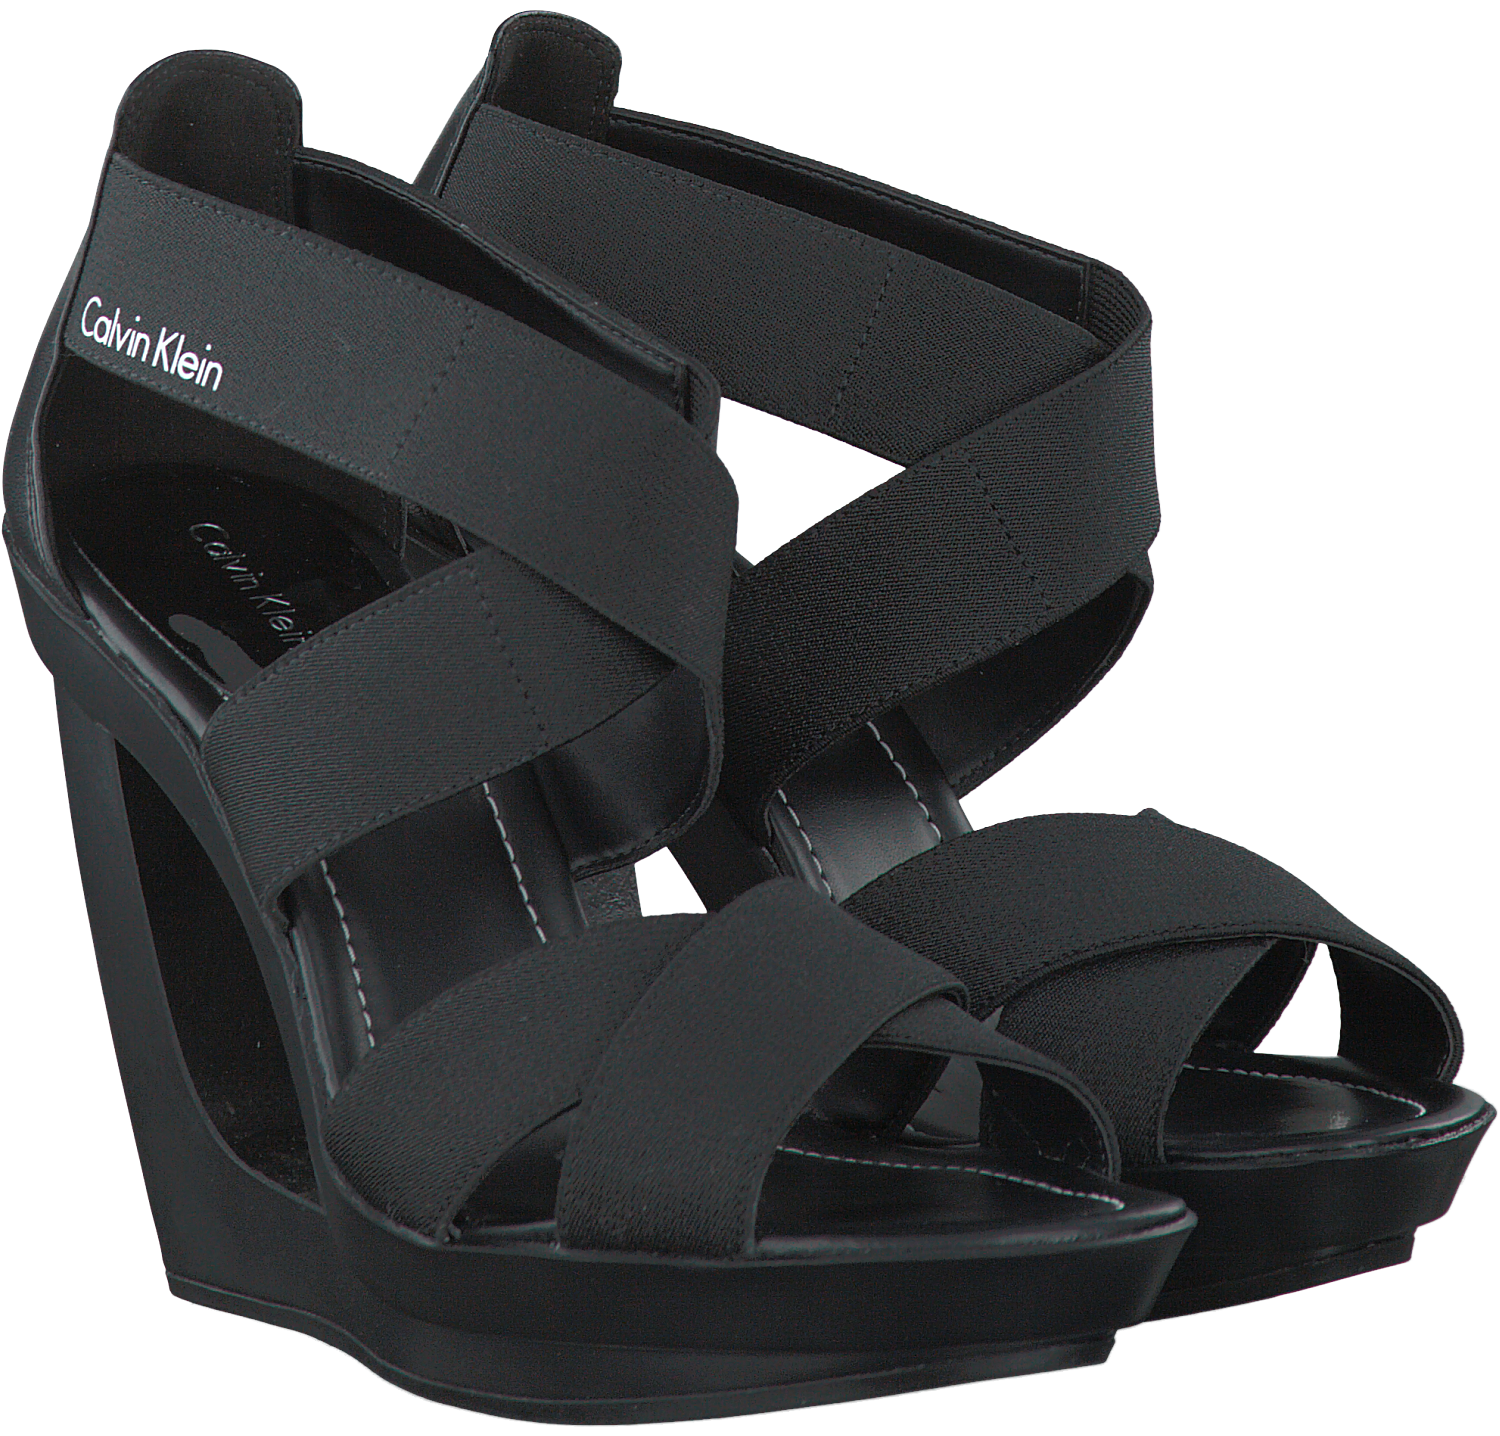 schwarze calvin klein sandalen yvette schuhmode online. Black Bedroom Furniture Sets. Home Design Ideas